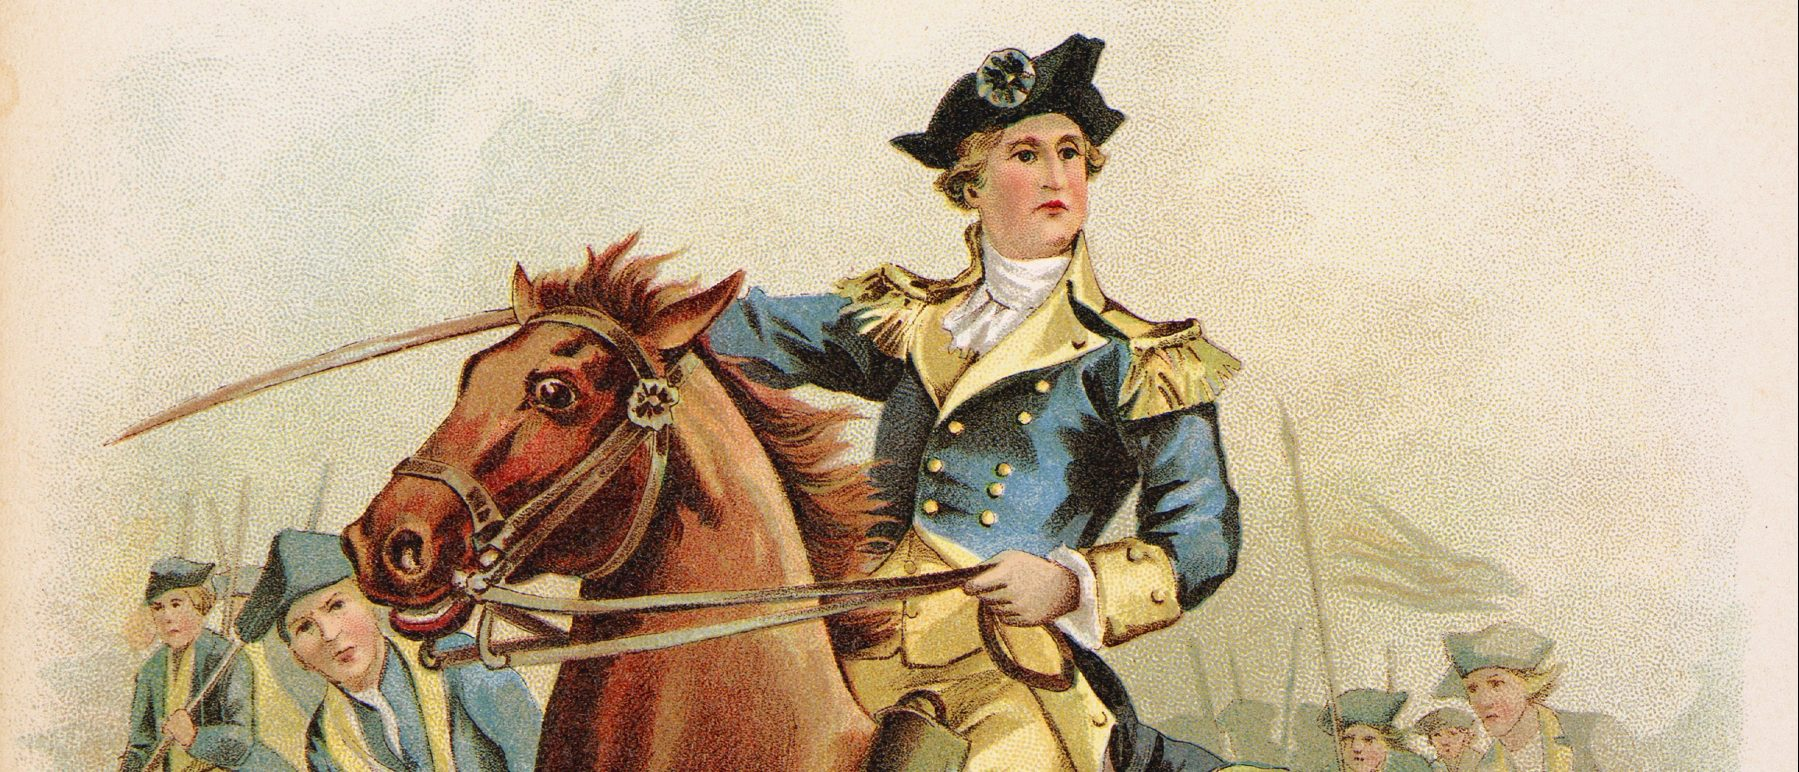 General George Washington leading the attack at the Battle of Monmouth, New Jersey. June 28, 1778.